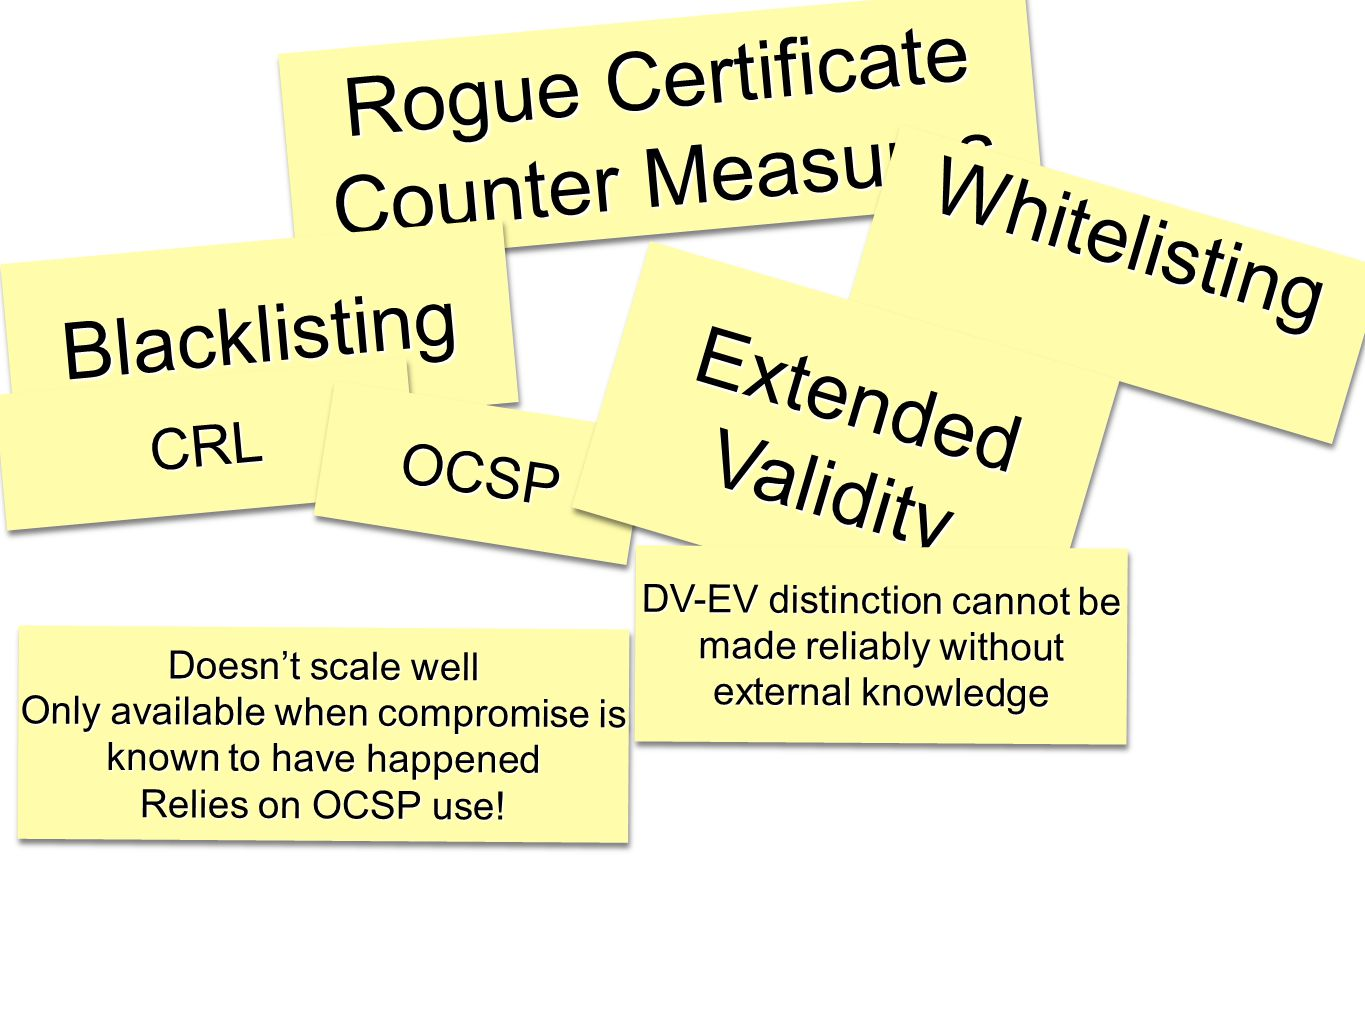 Rogue Certificate Counter Measures BlacklistingBlacklisting WhitelistingWhitelisting CRLCRL OCSPOCSP Doesn't scale well Only available when compromise